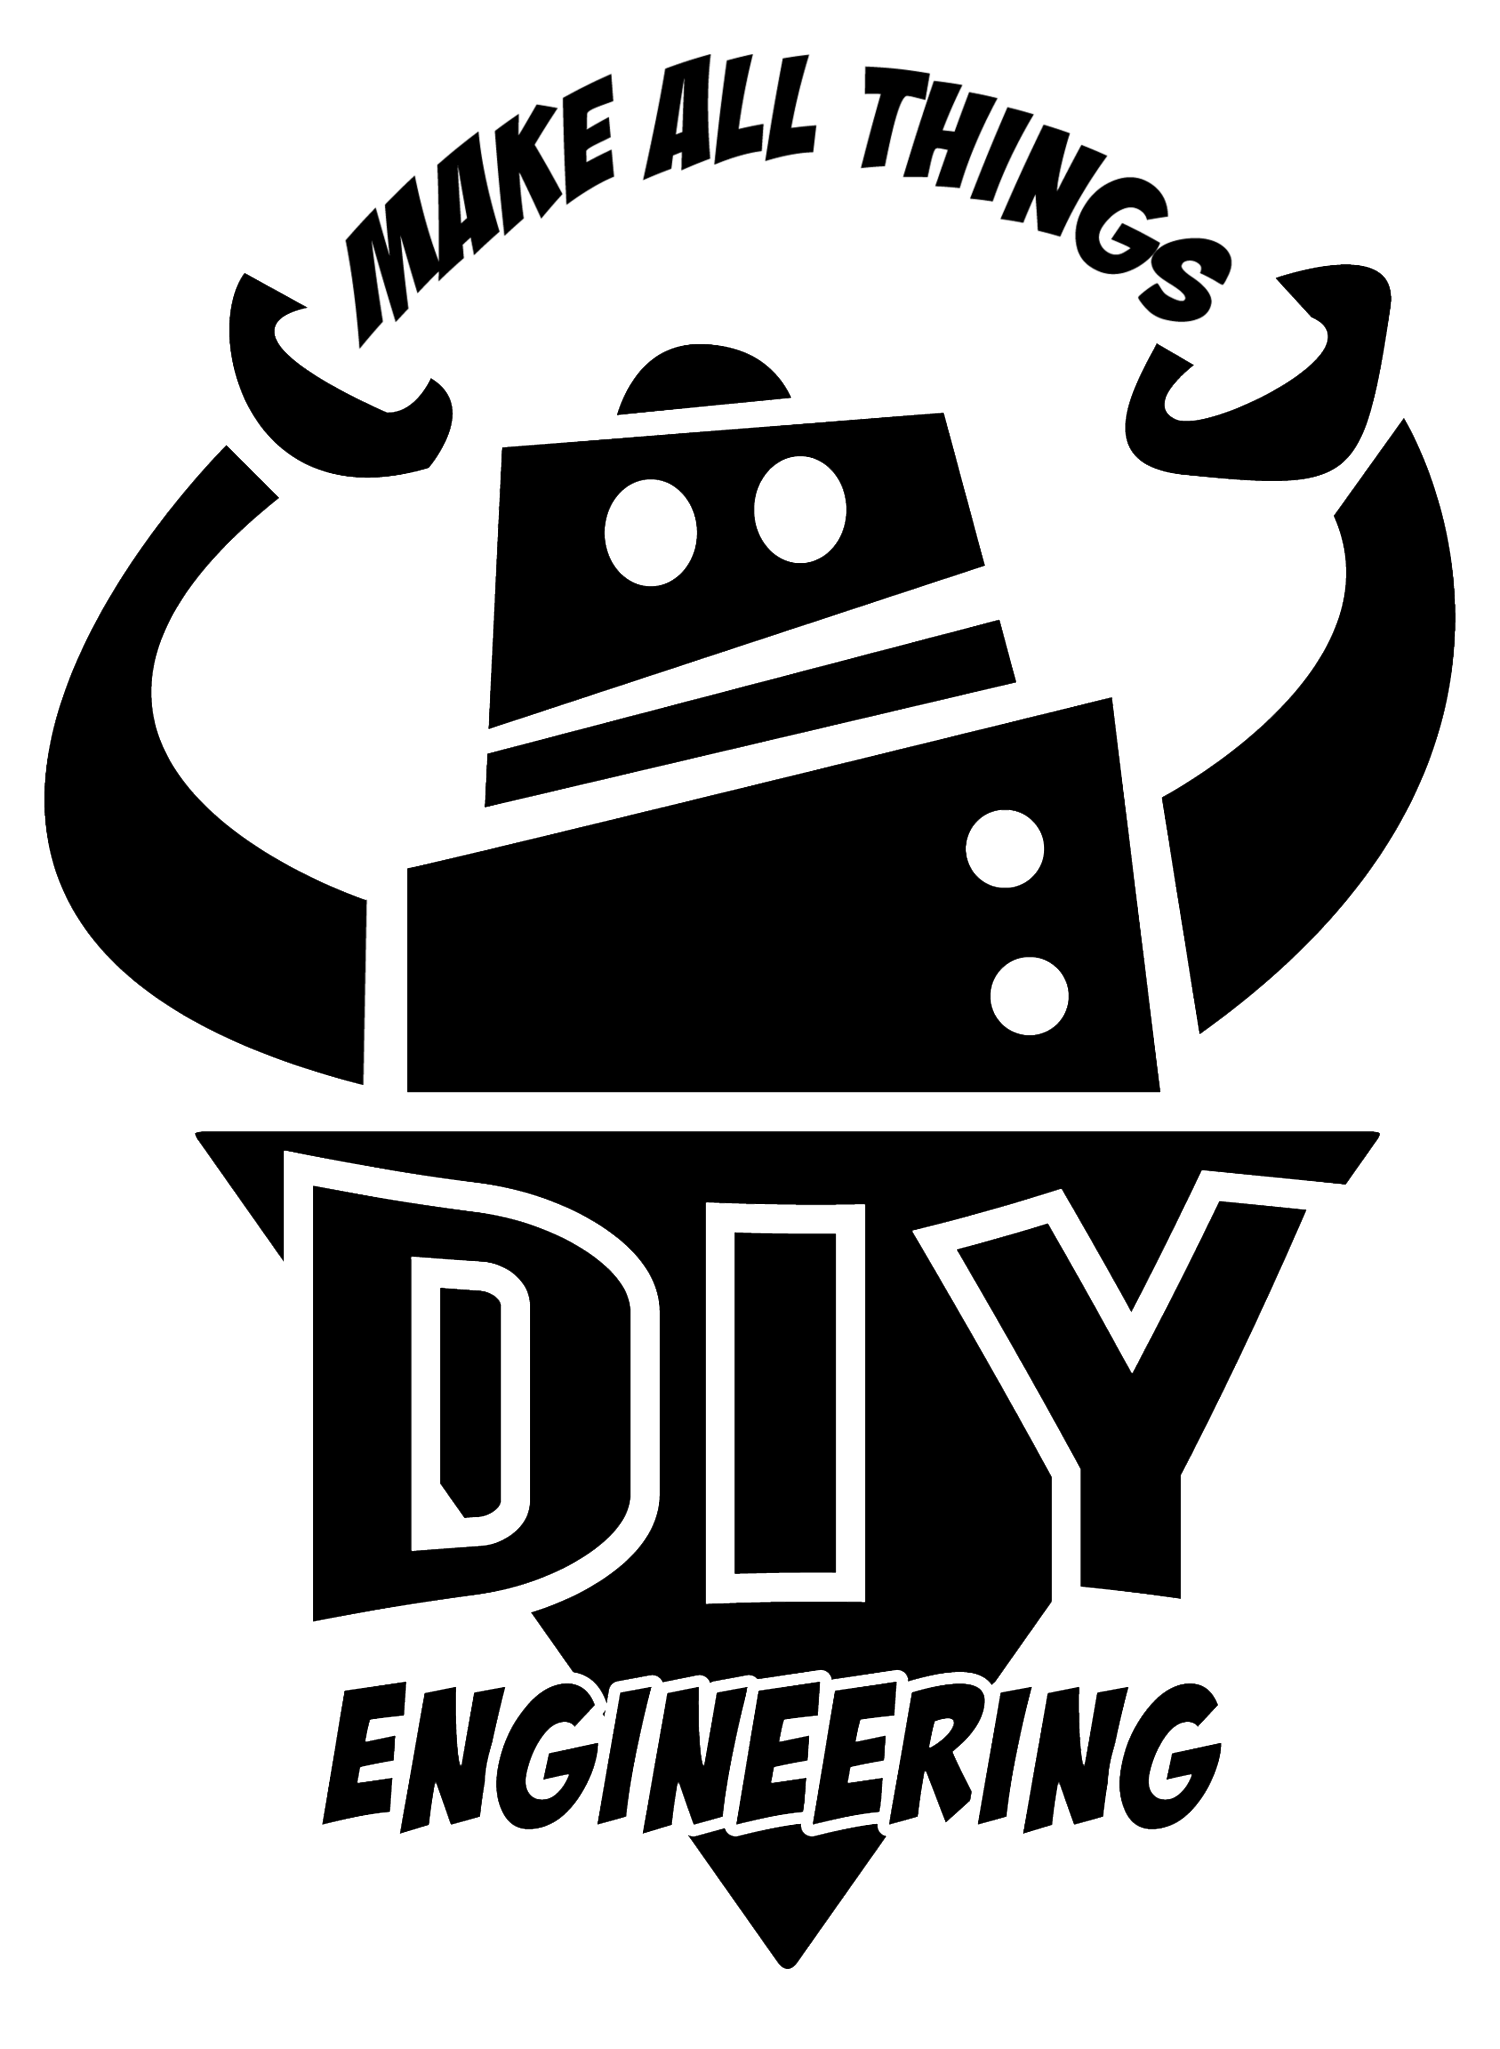 DIY Engineering